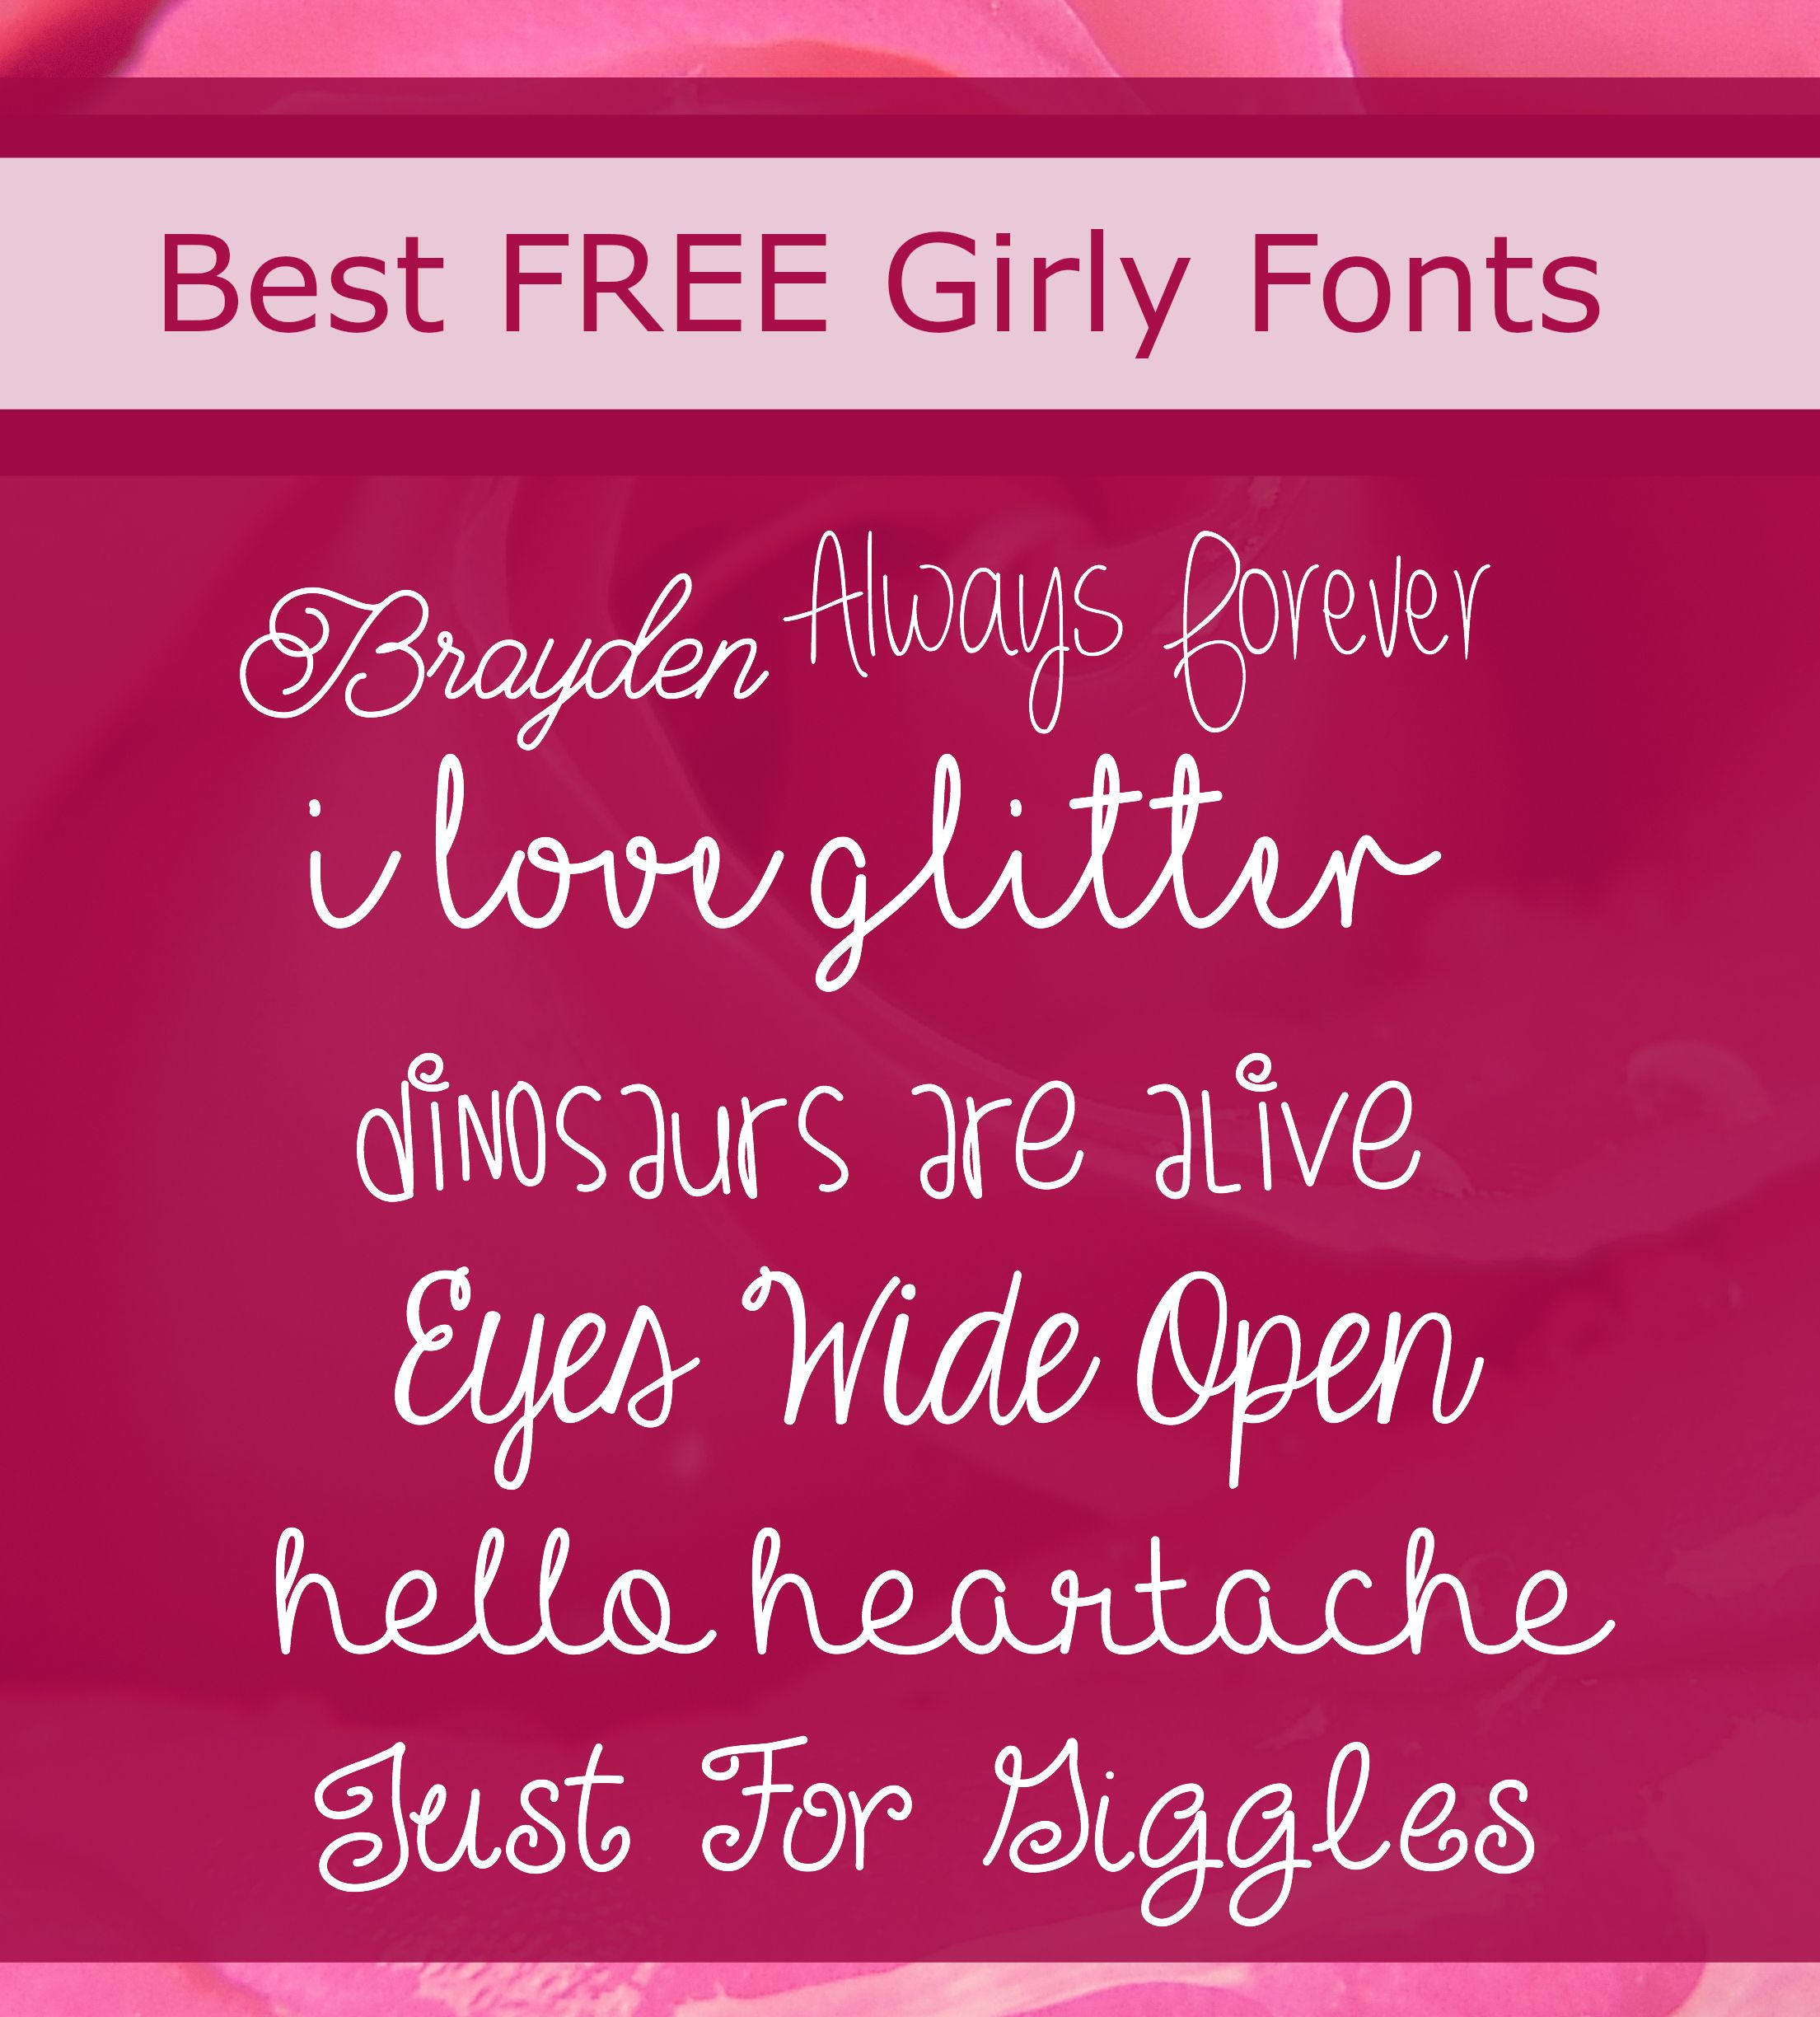 Best Free Girly Fonts